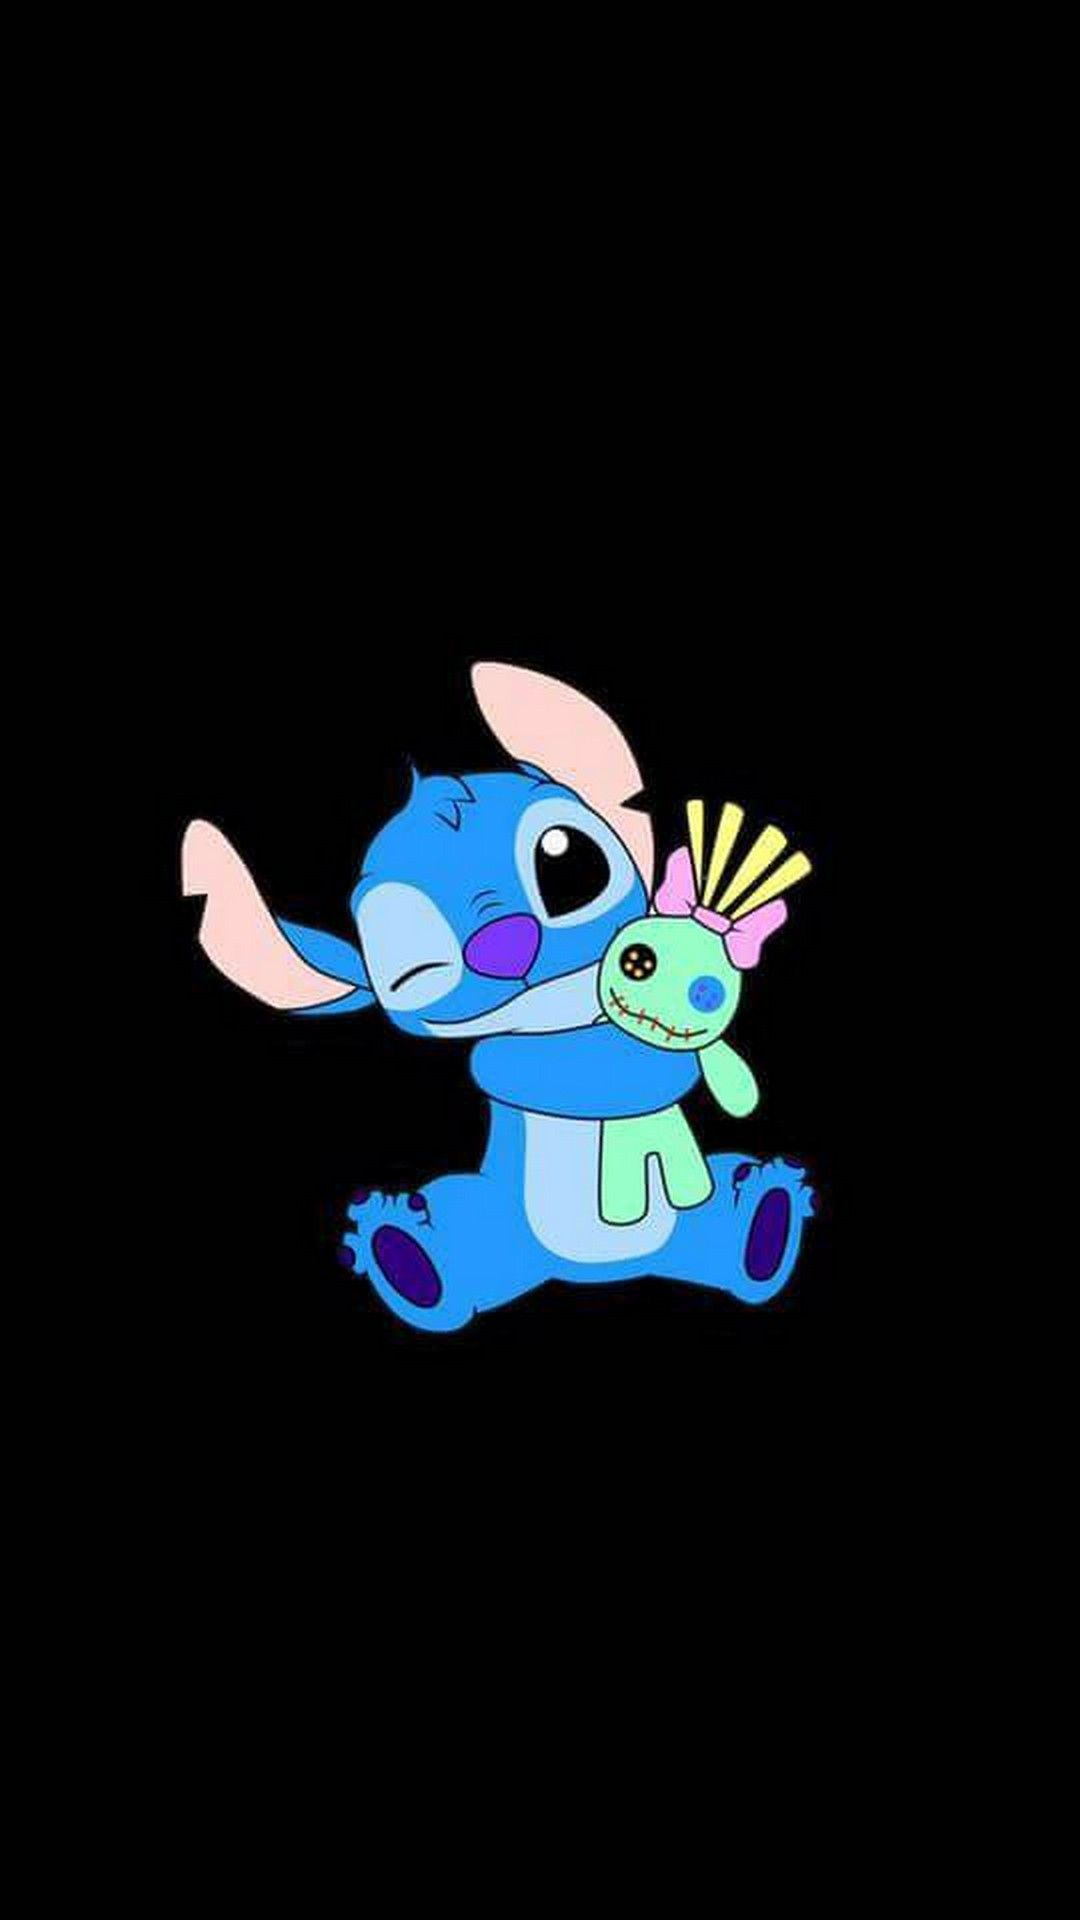 Stitch Hd Wallpapers For Mobile Best Hd Wallpapers Disney Wallpaper Wallpaper Iphone Disney Cute Stitch